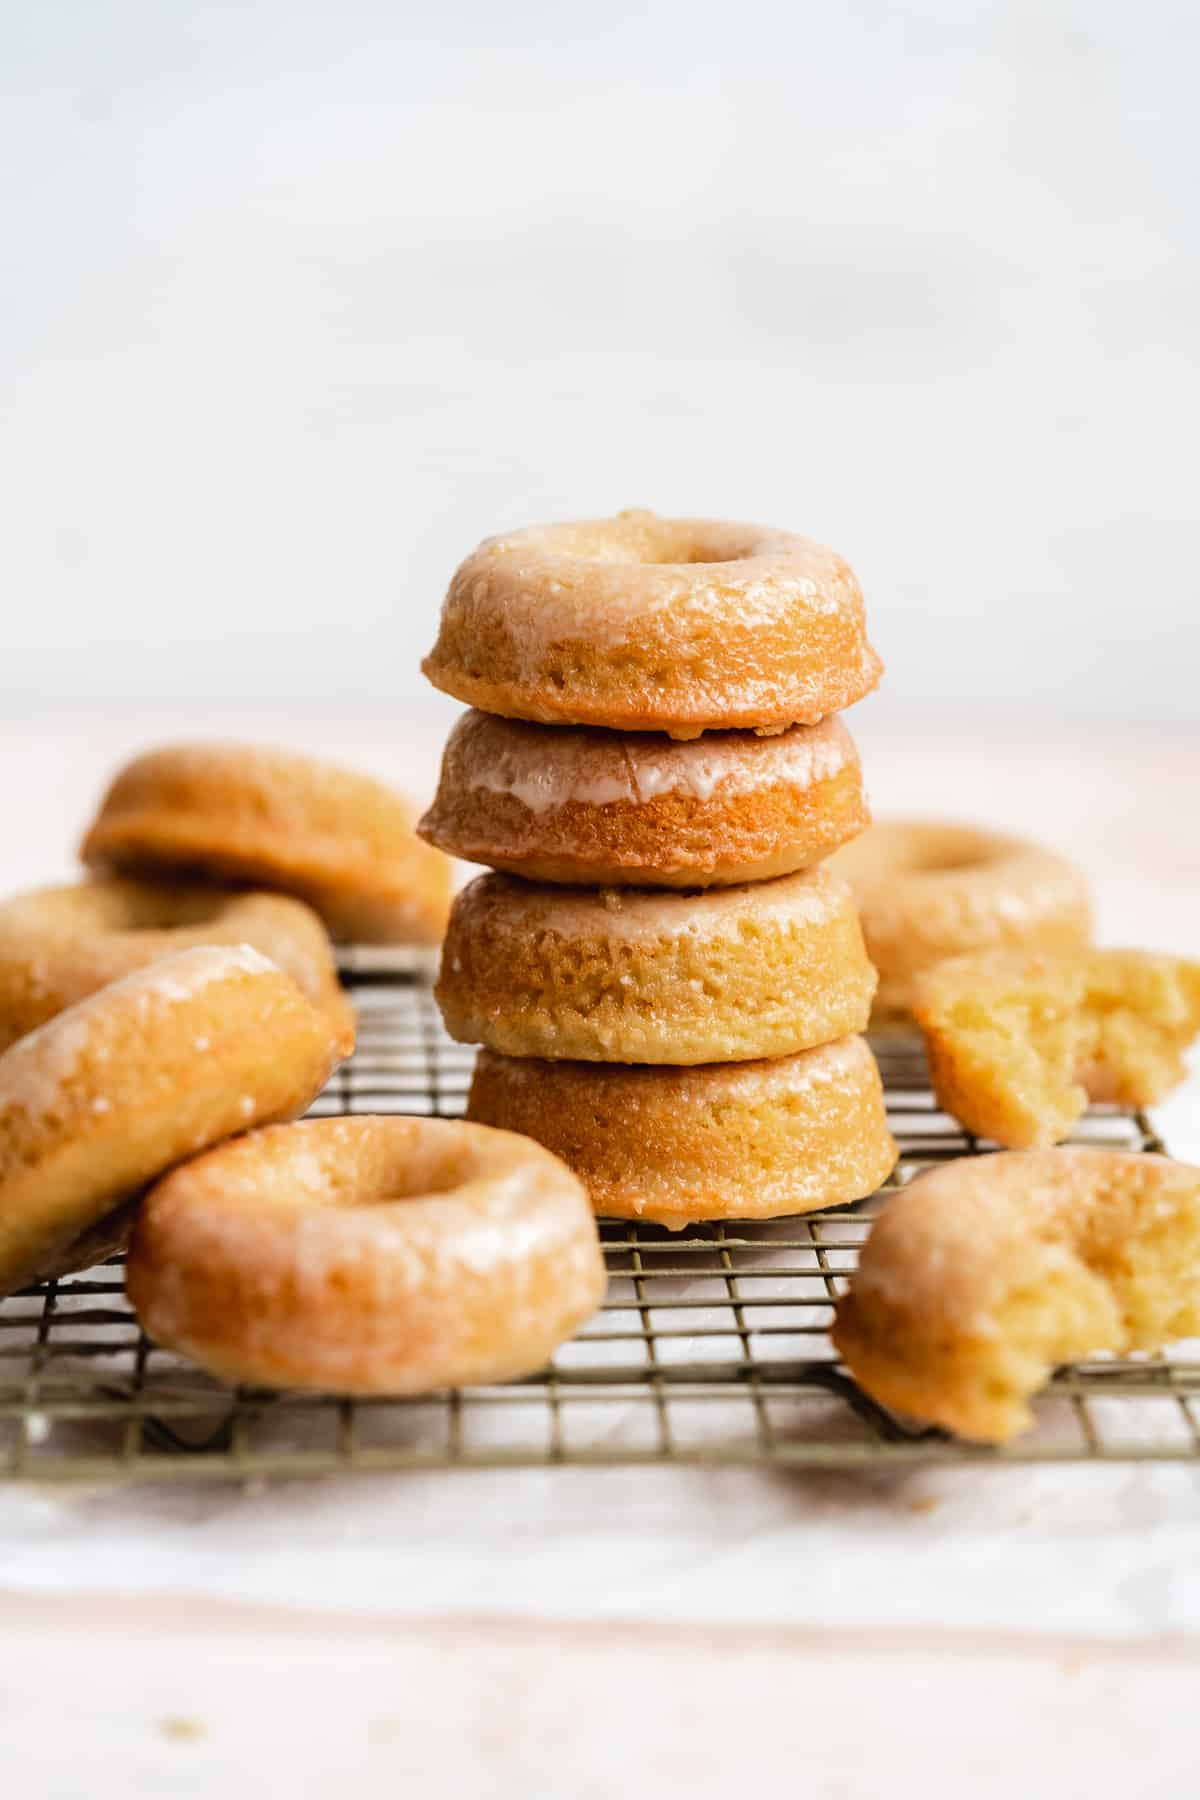 Glazed donuts stacked on a wire rack with donuts scattered on surface.